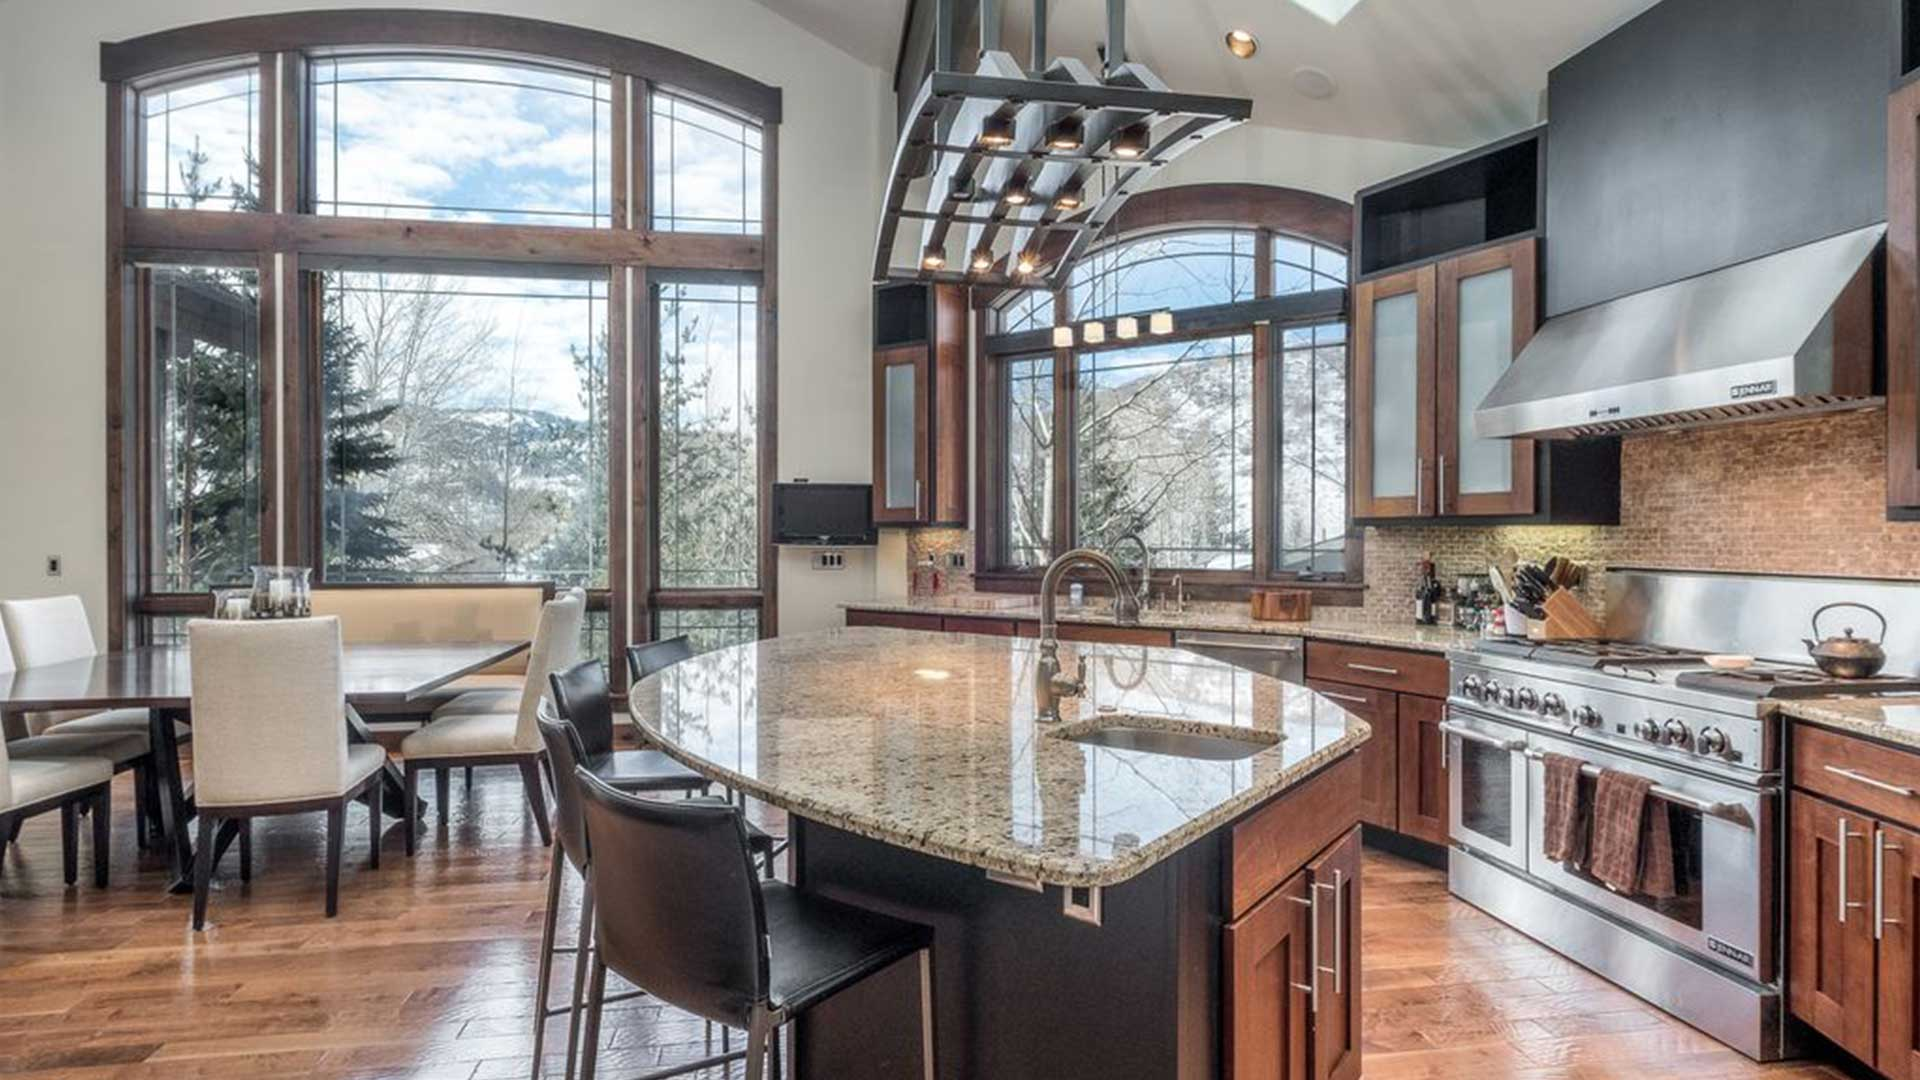 Deer Valley Luxury Rental For Whole Family